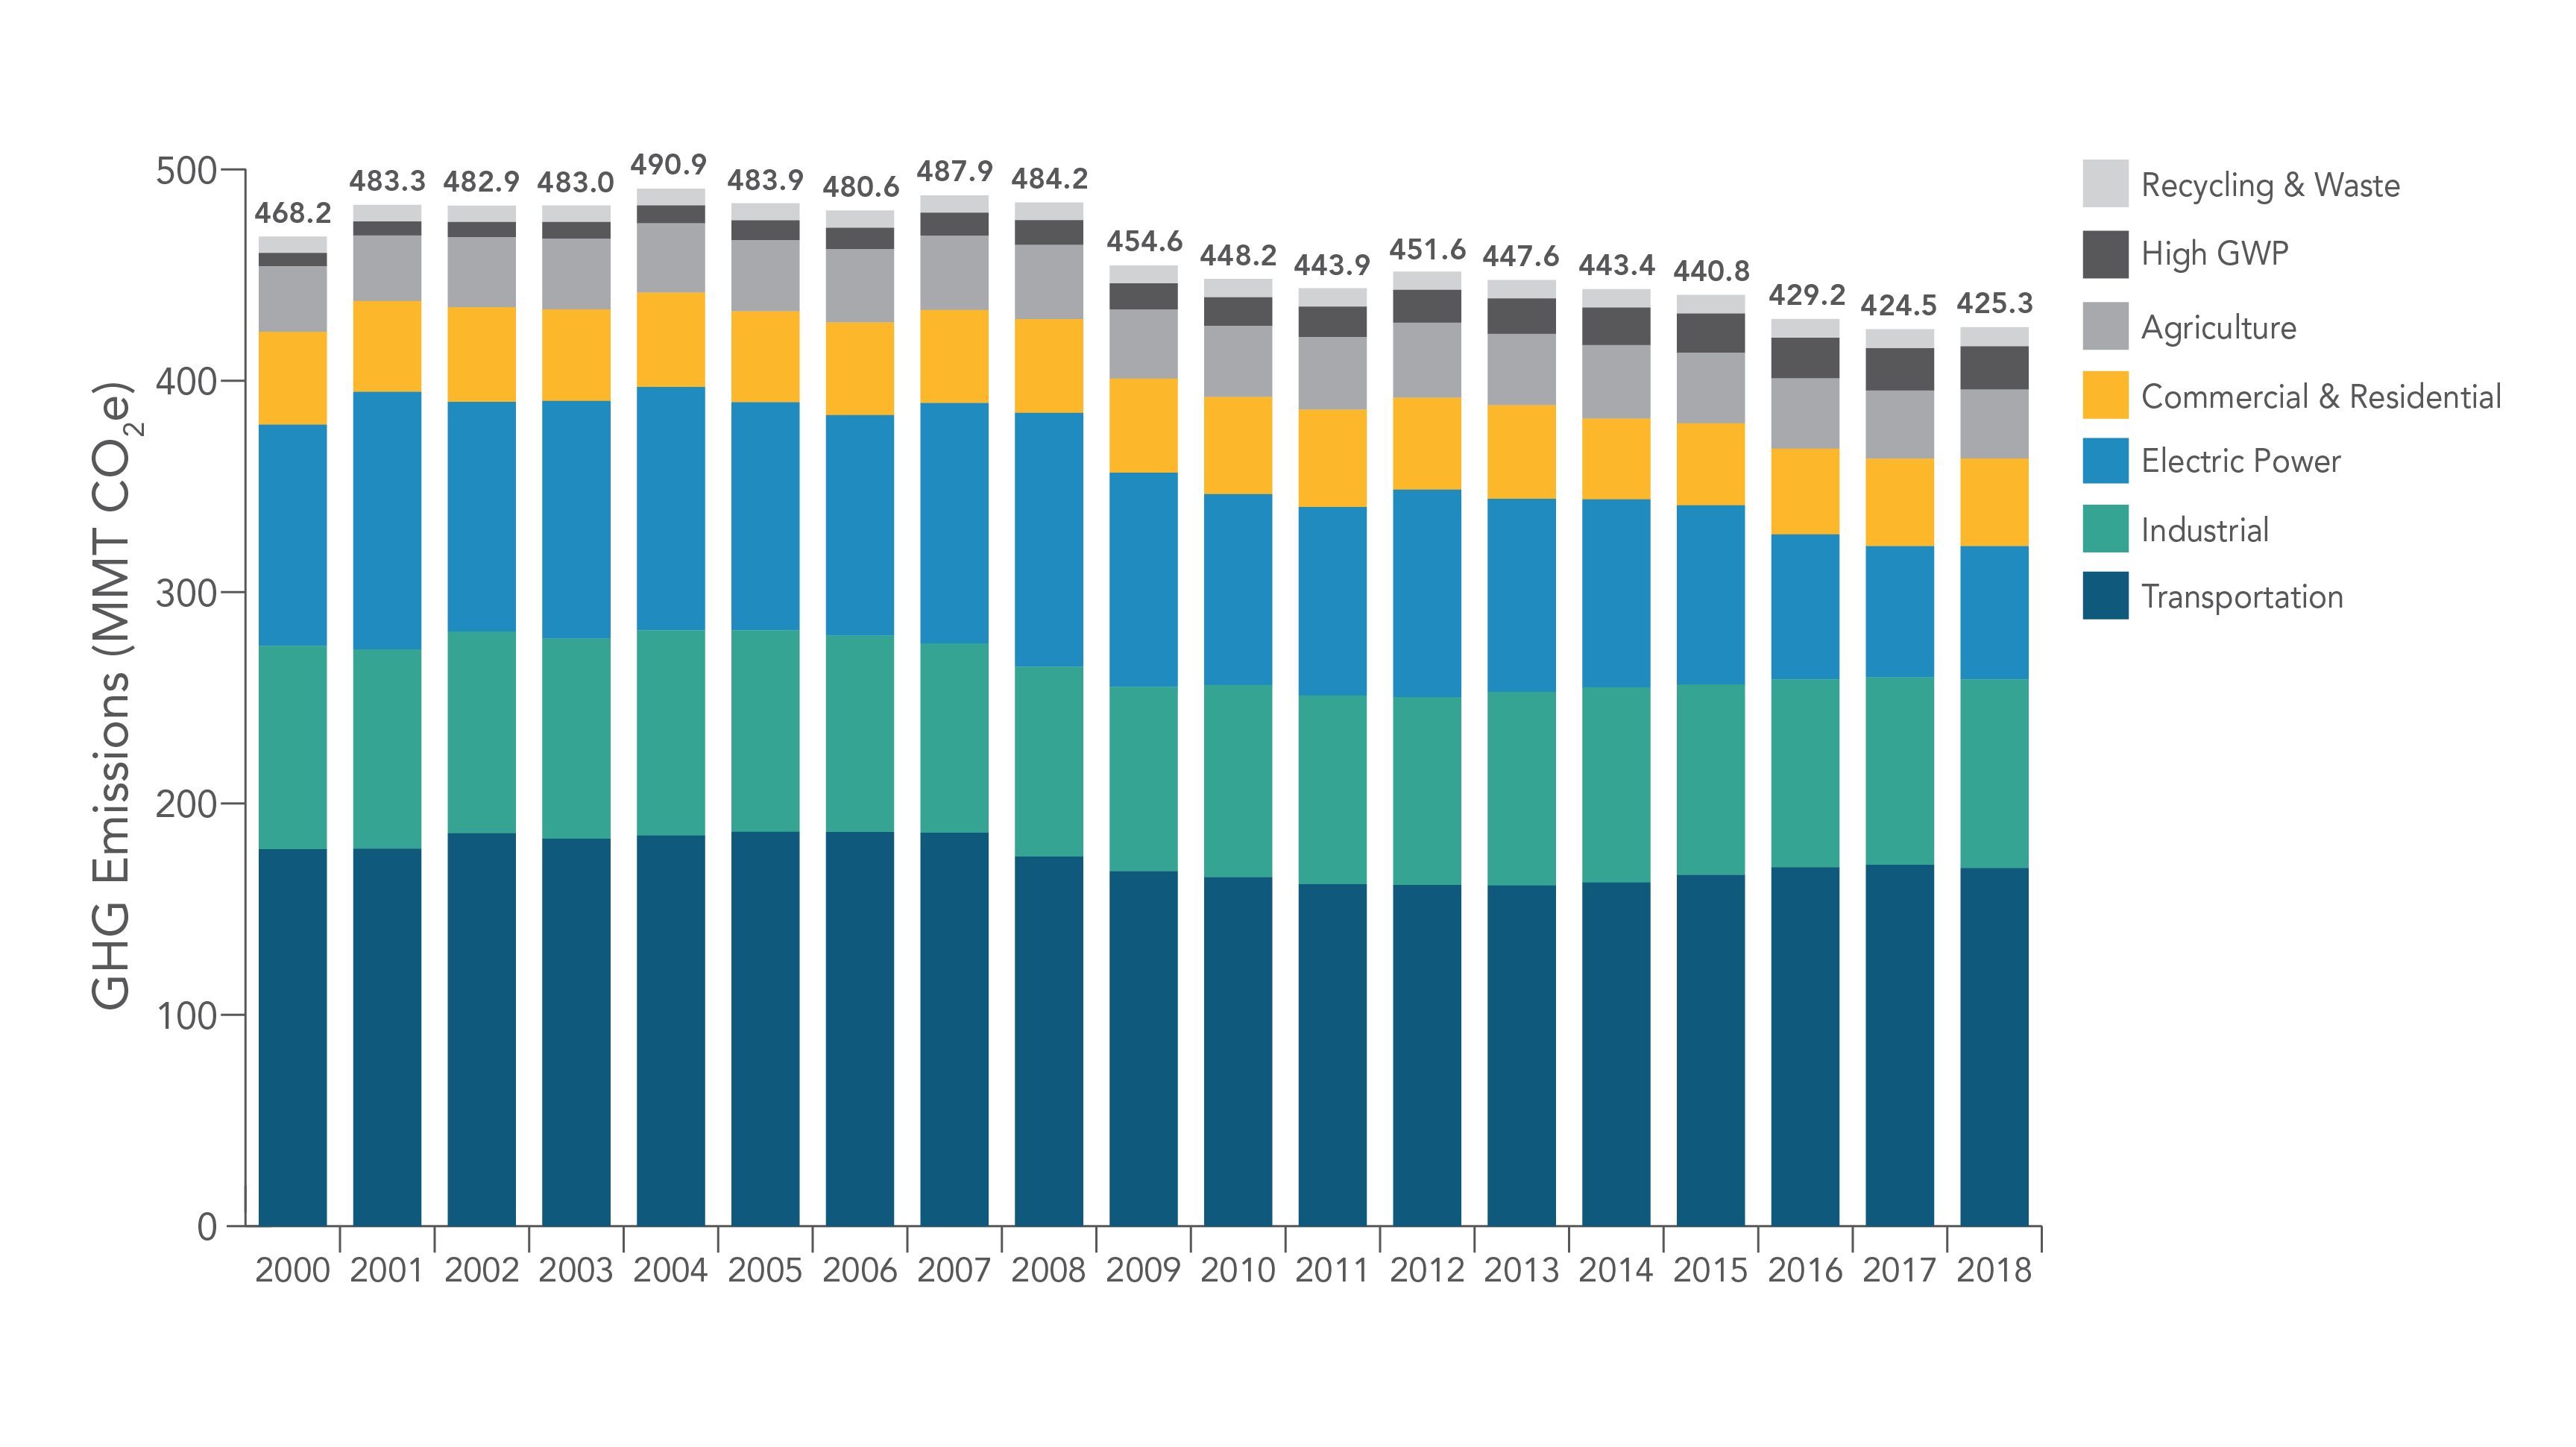 2000–2018 GHG Emissions by Category as Defined in the Scoping Plan